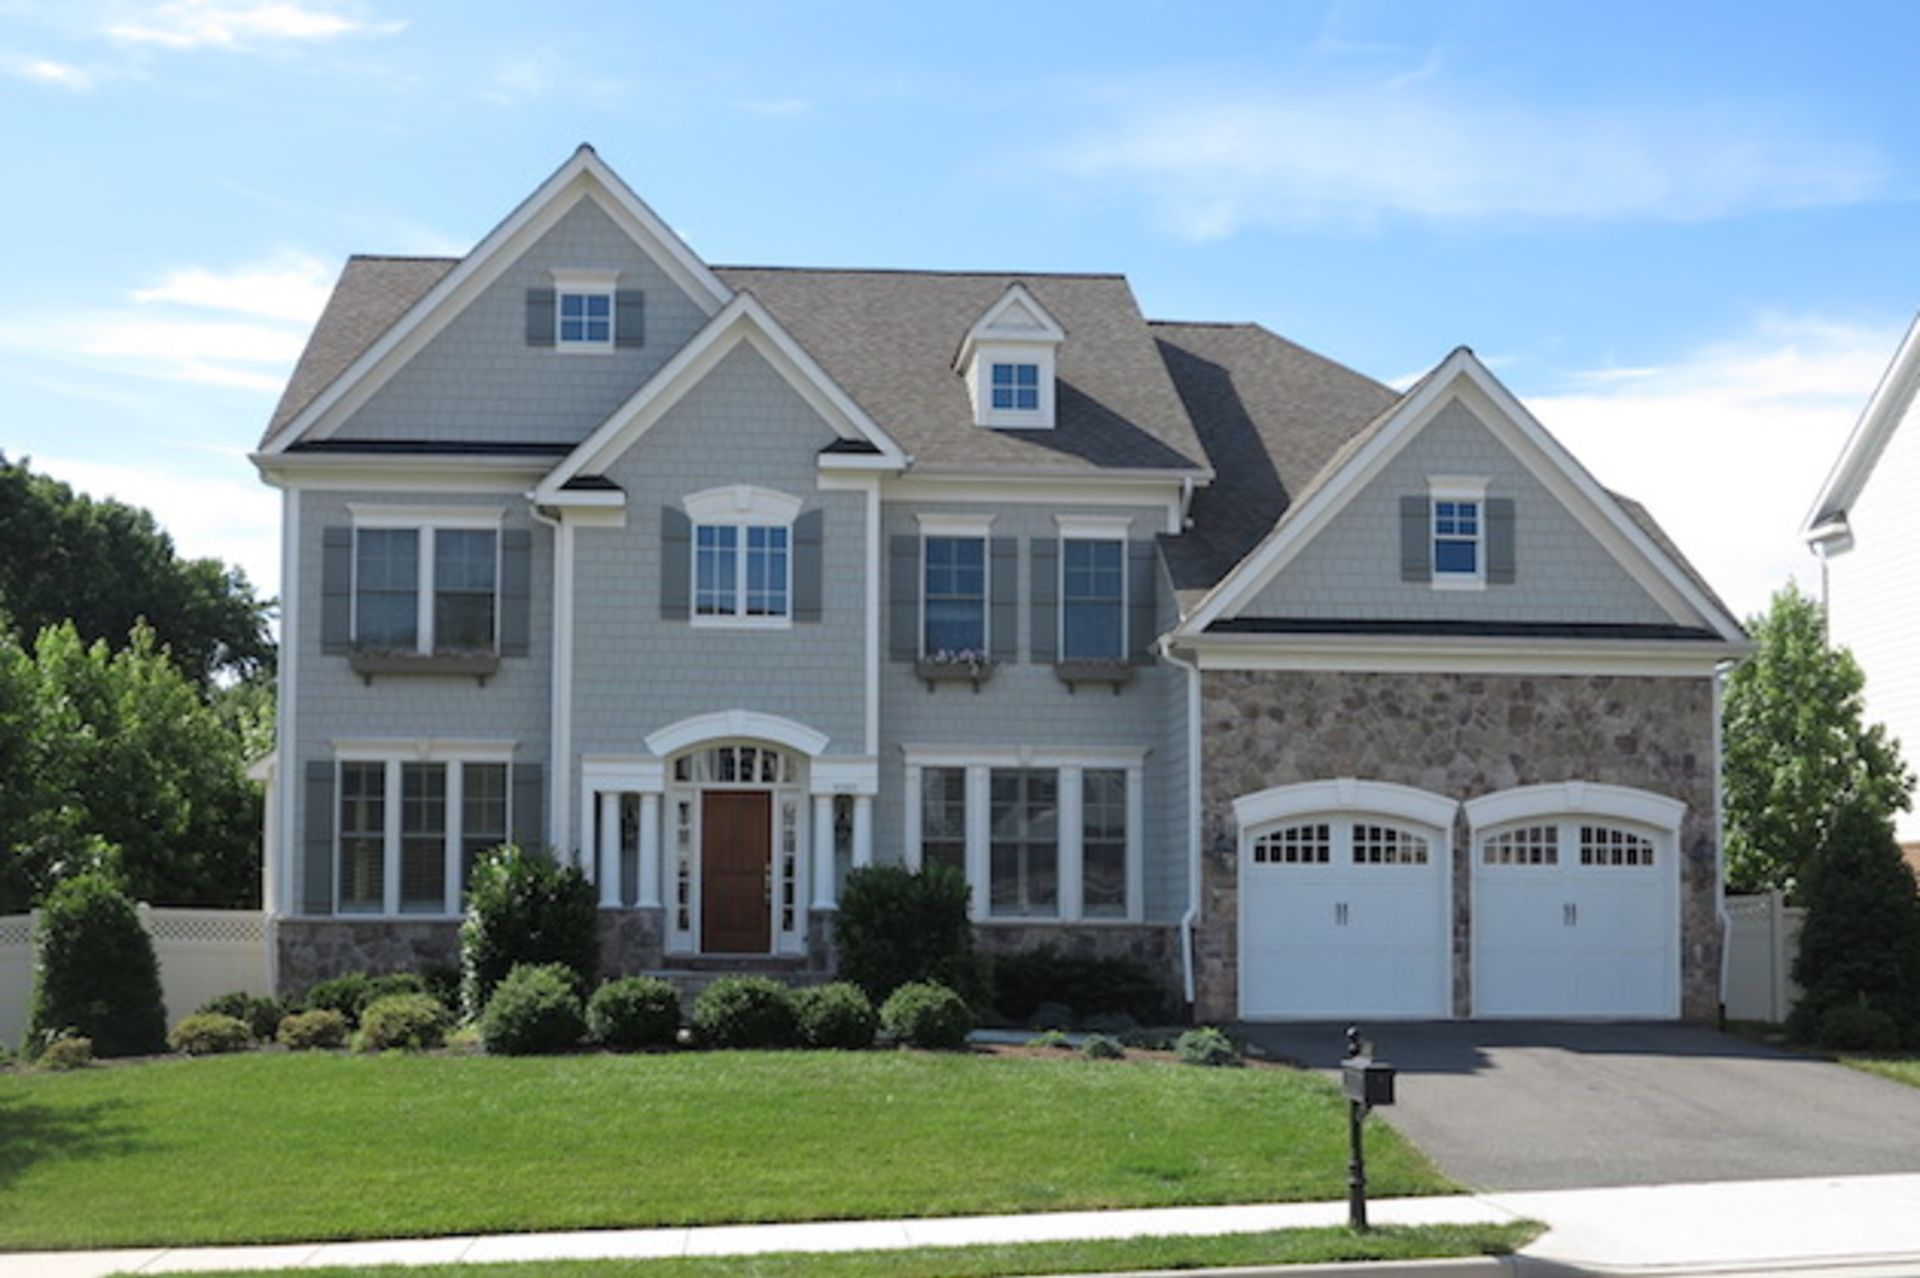 Things to Research Before Buying a Home in Fairfax County